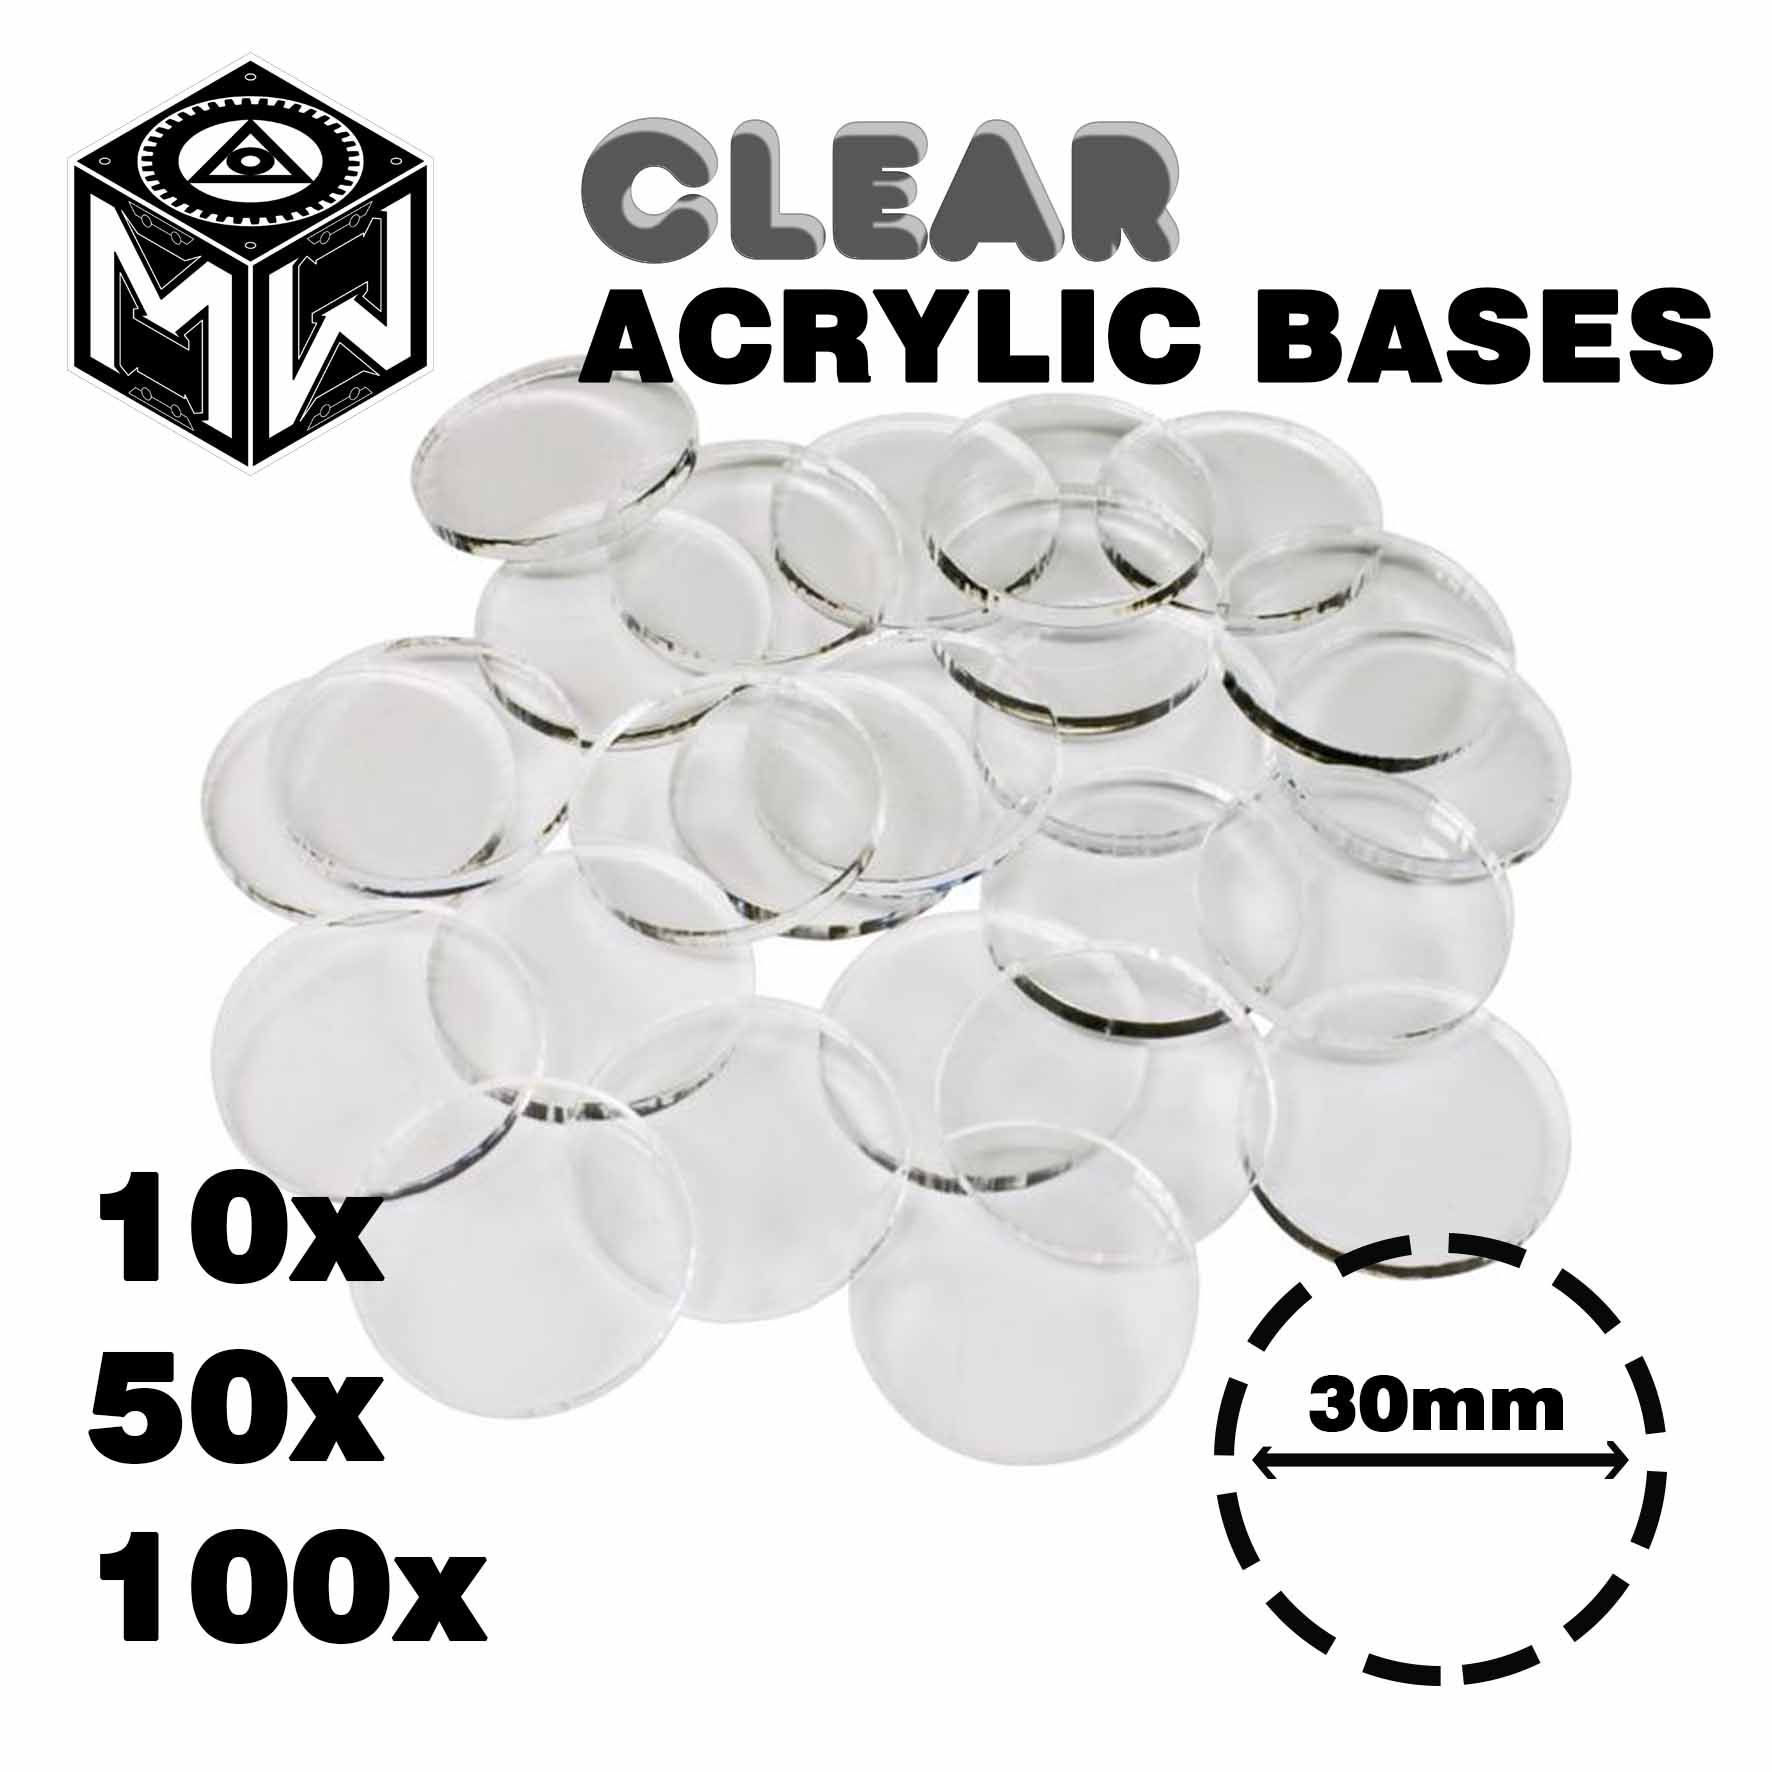 3mm Acrylic Clear Bases , Round 30mm